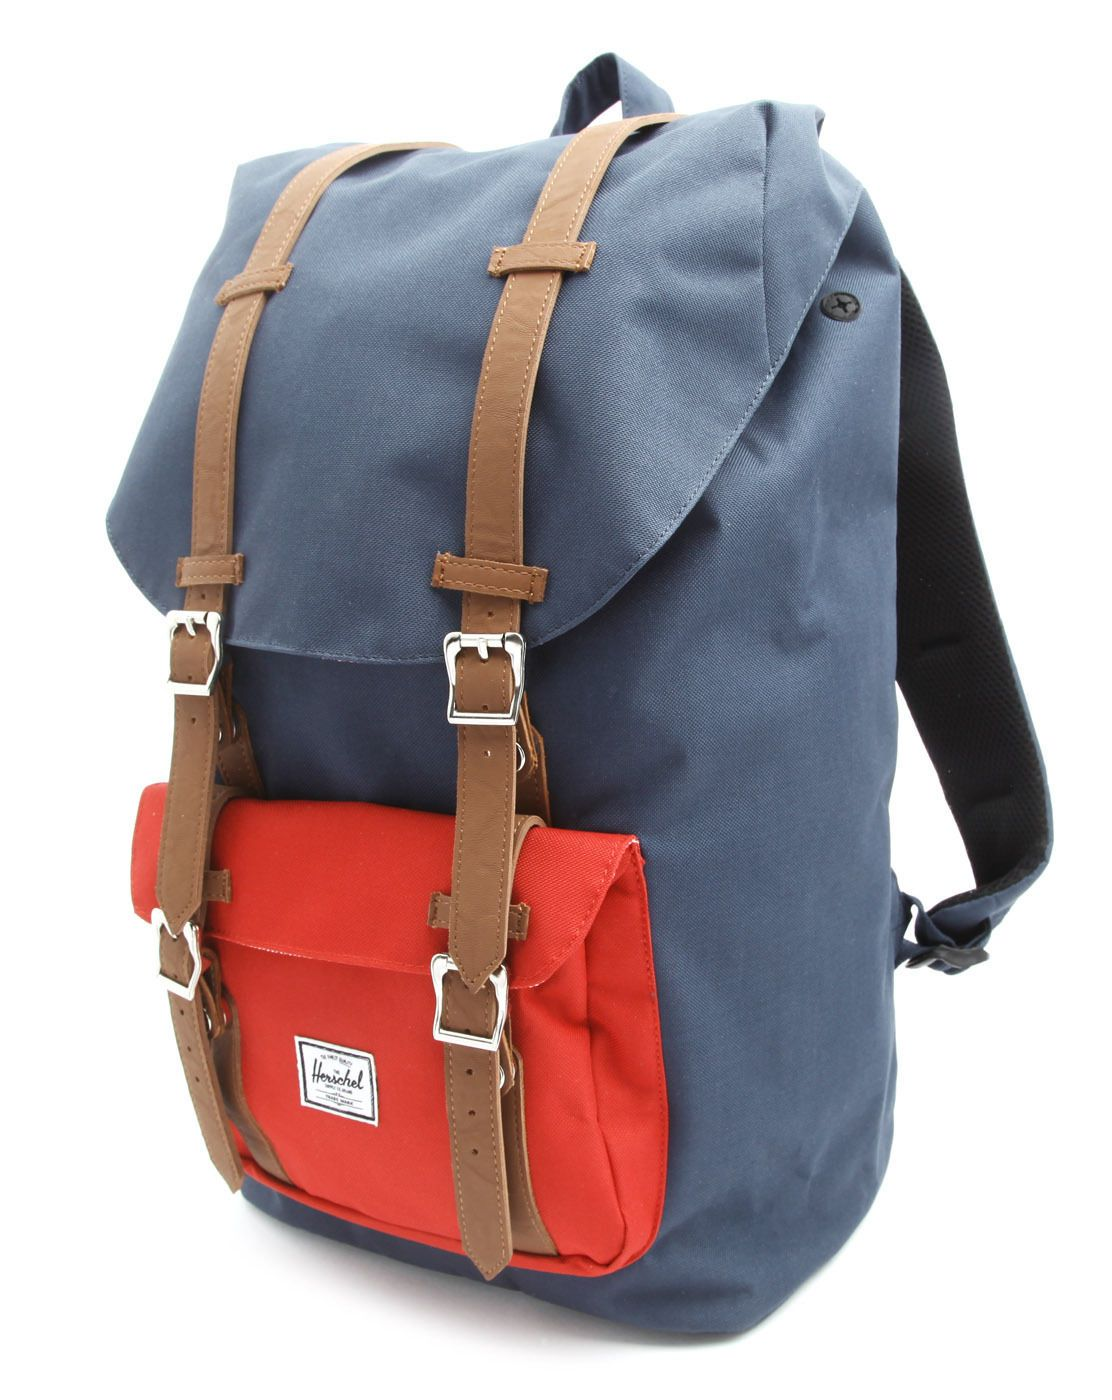 herschel backpack swiss backpack drawstring backpack